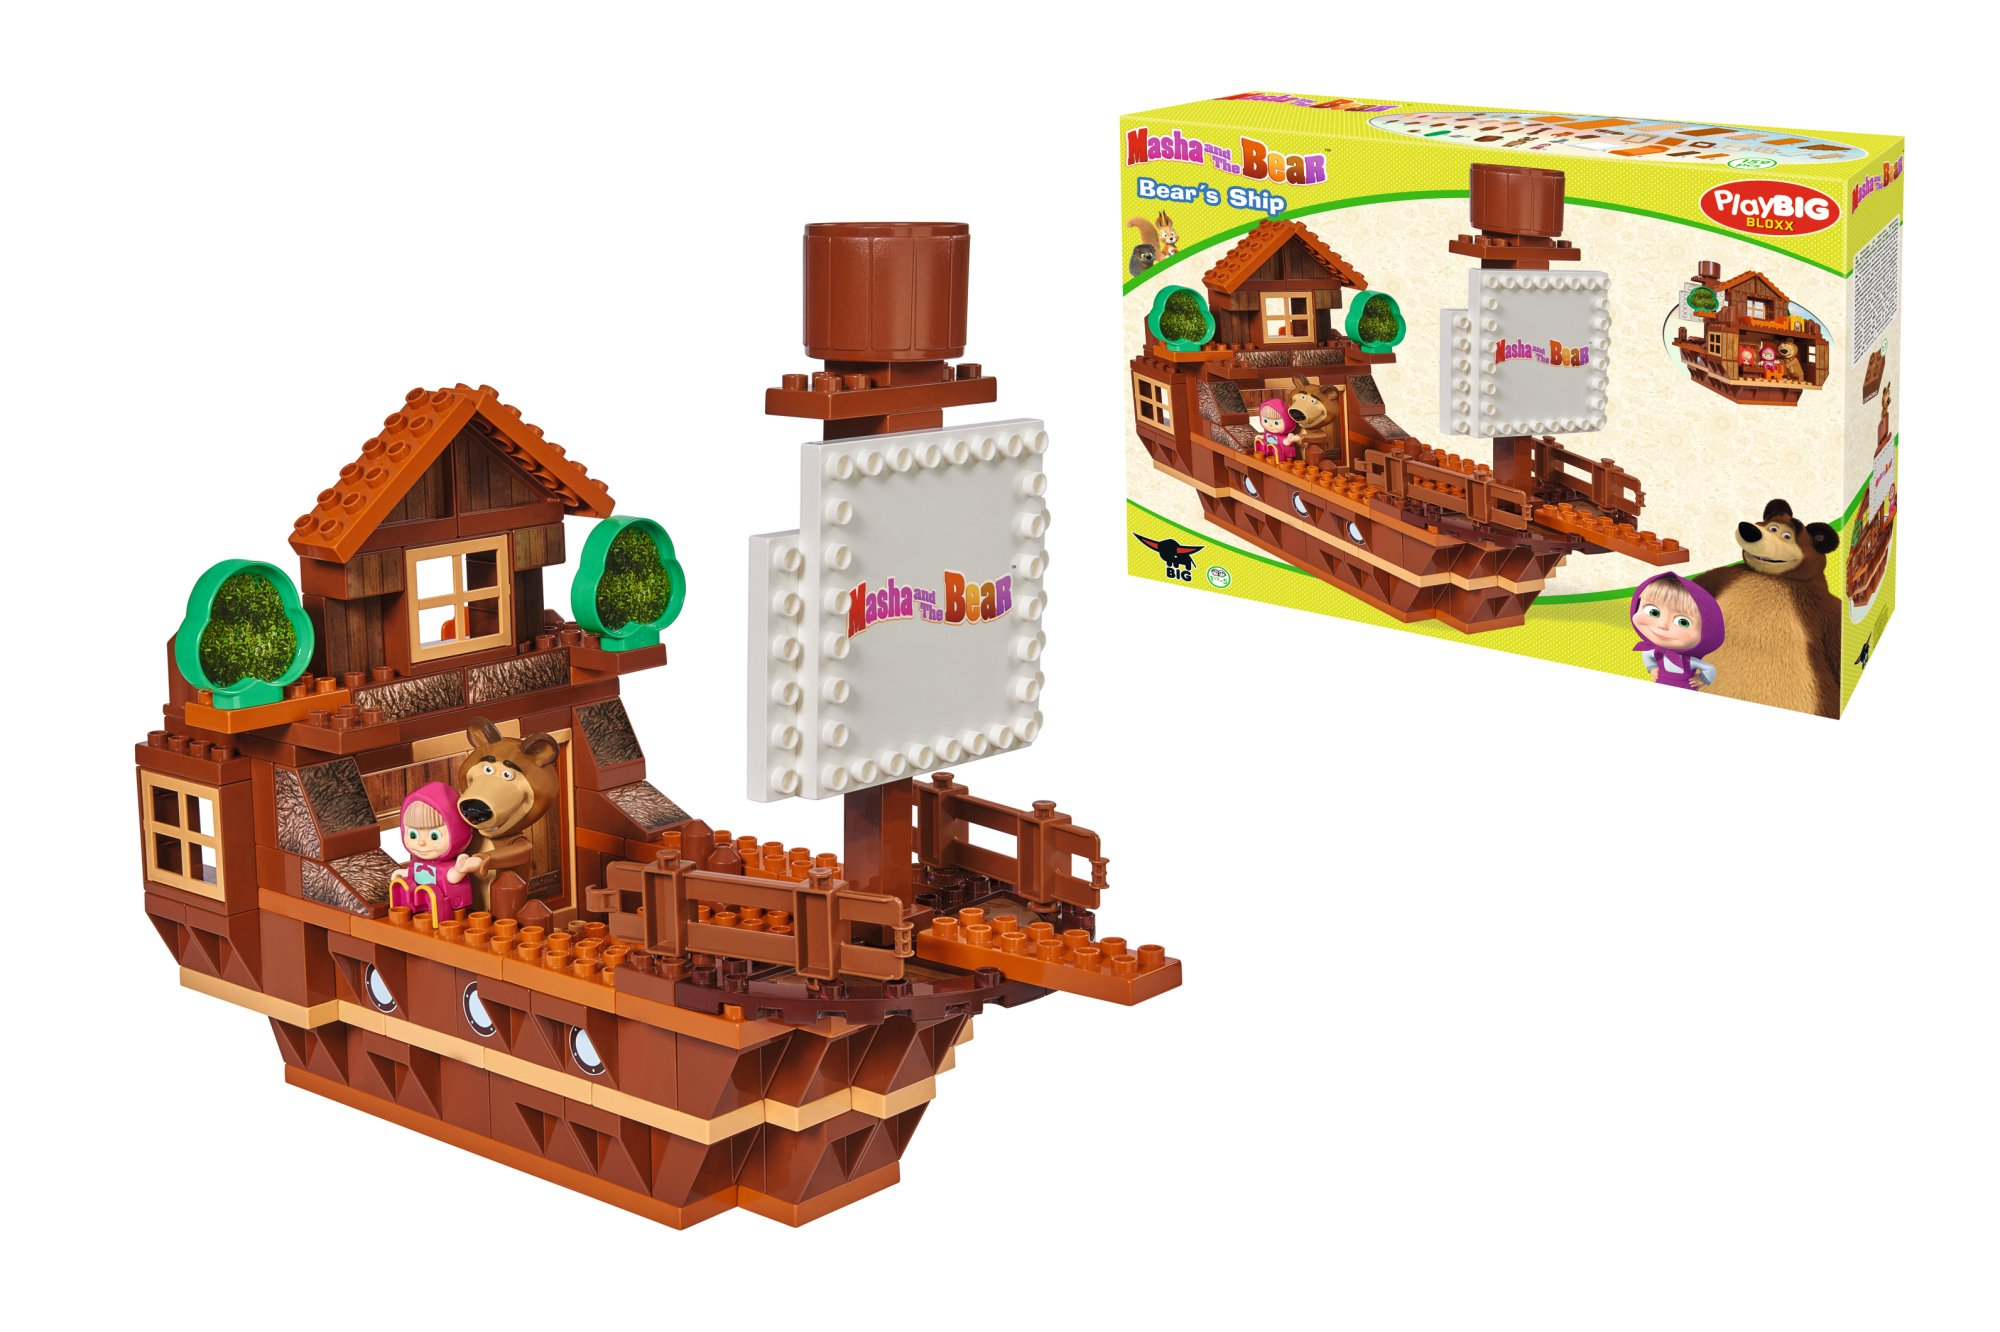 Big 800057107 ''Bloxx Masha and The Bear Ship Building Blocks Set